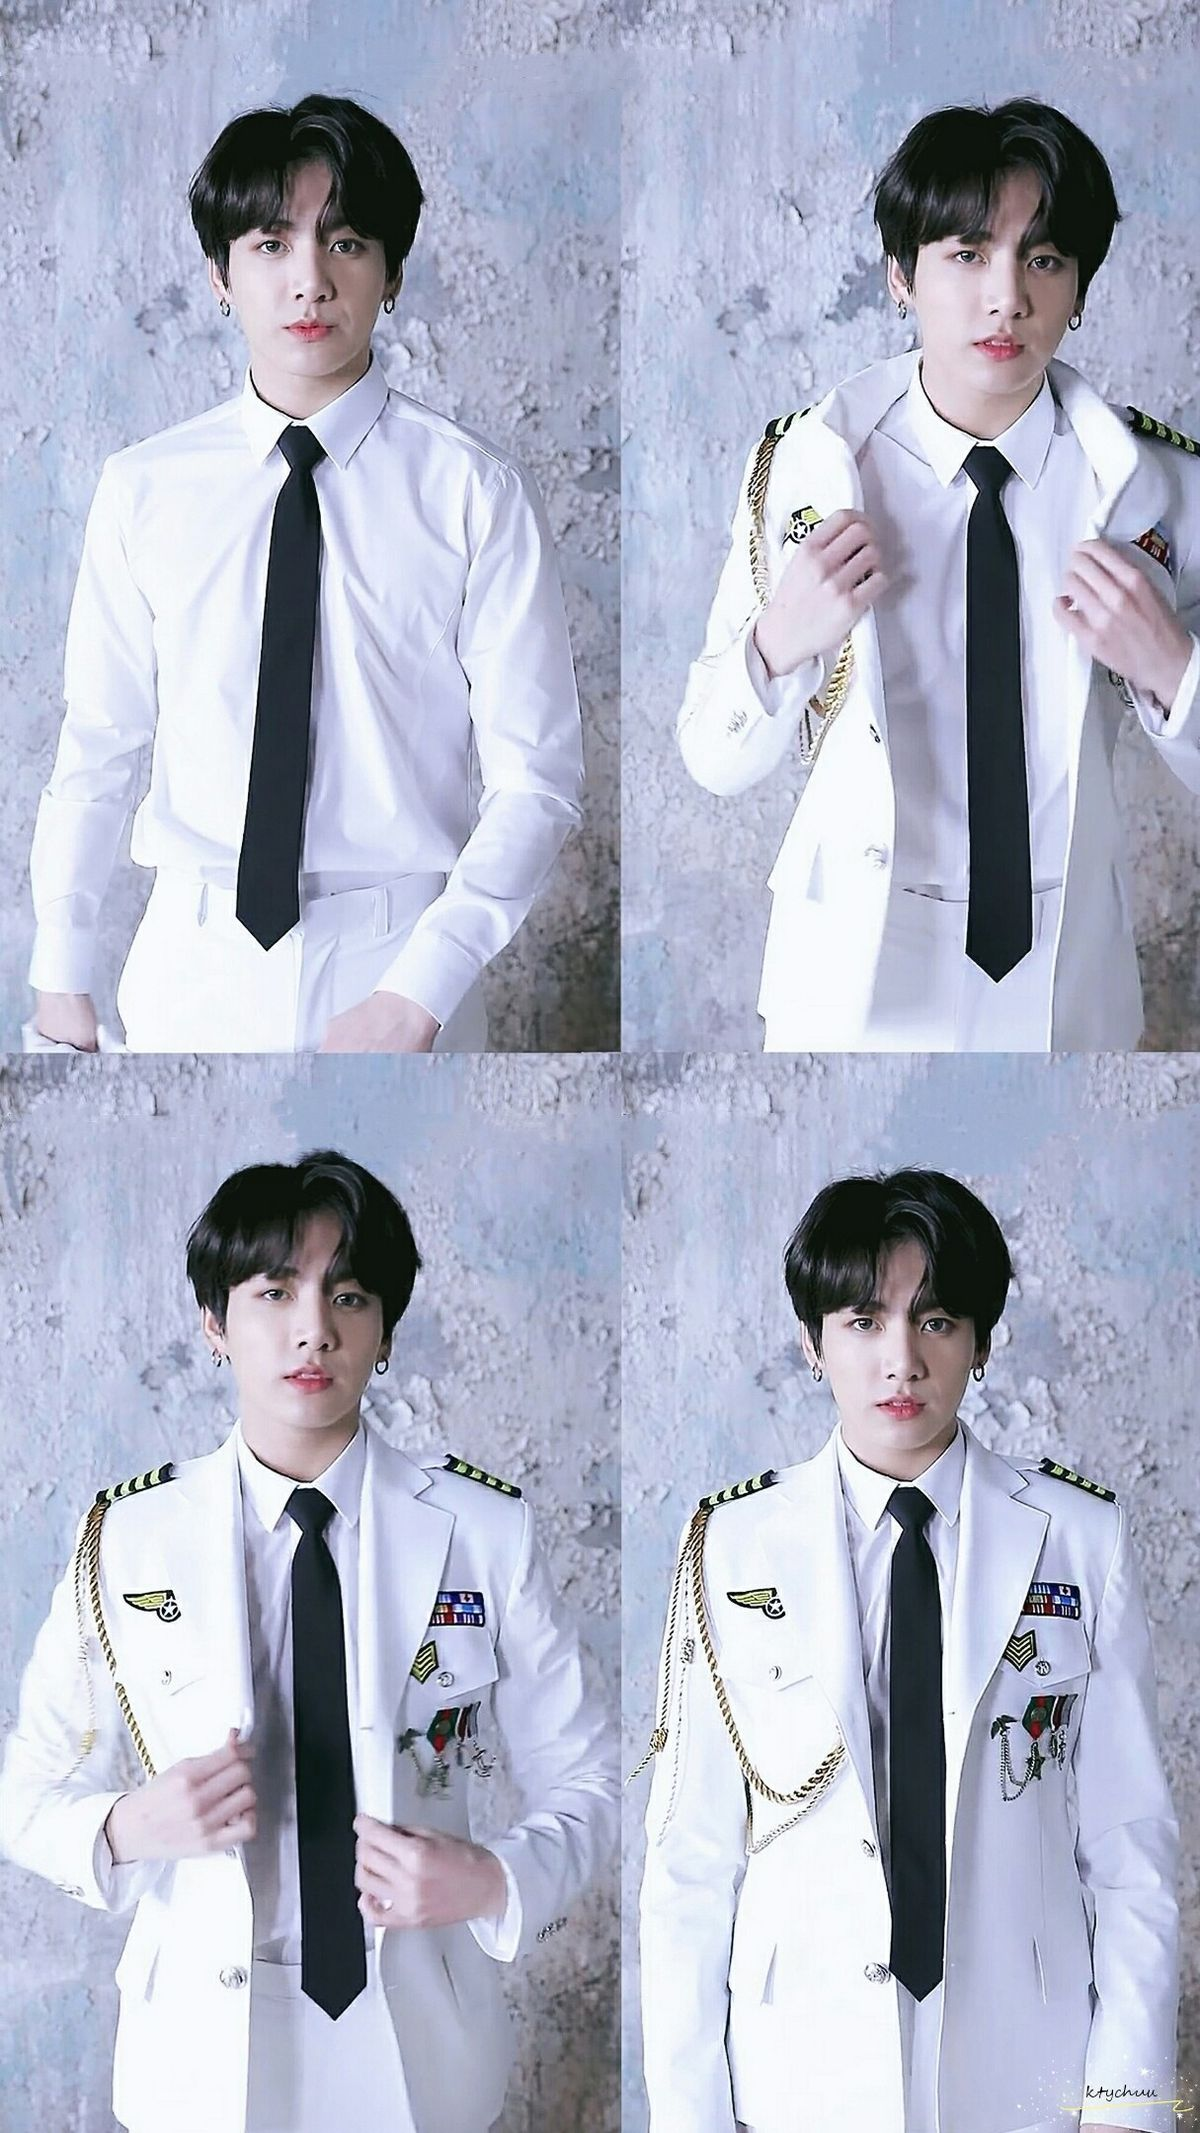 BTS EDITS BTS WALLPAPERS BTS OFFICIAL 5TH ARMY